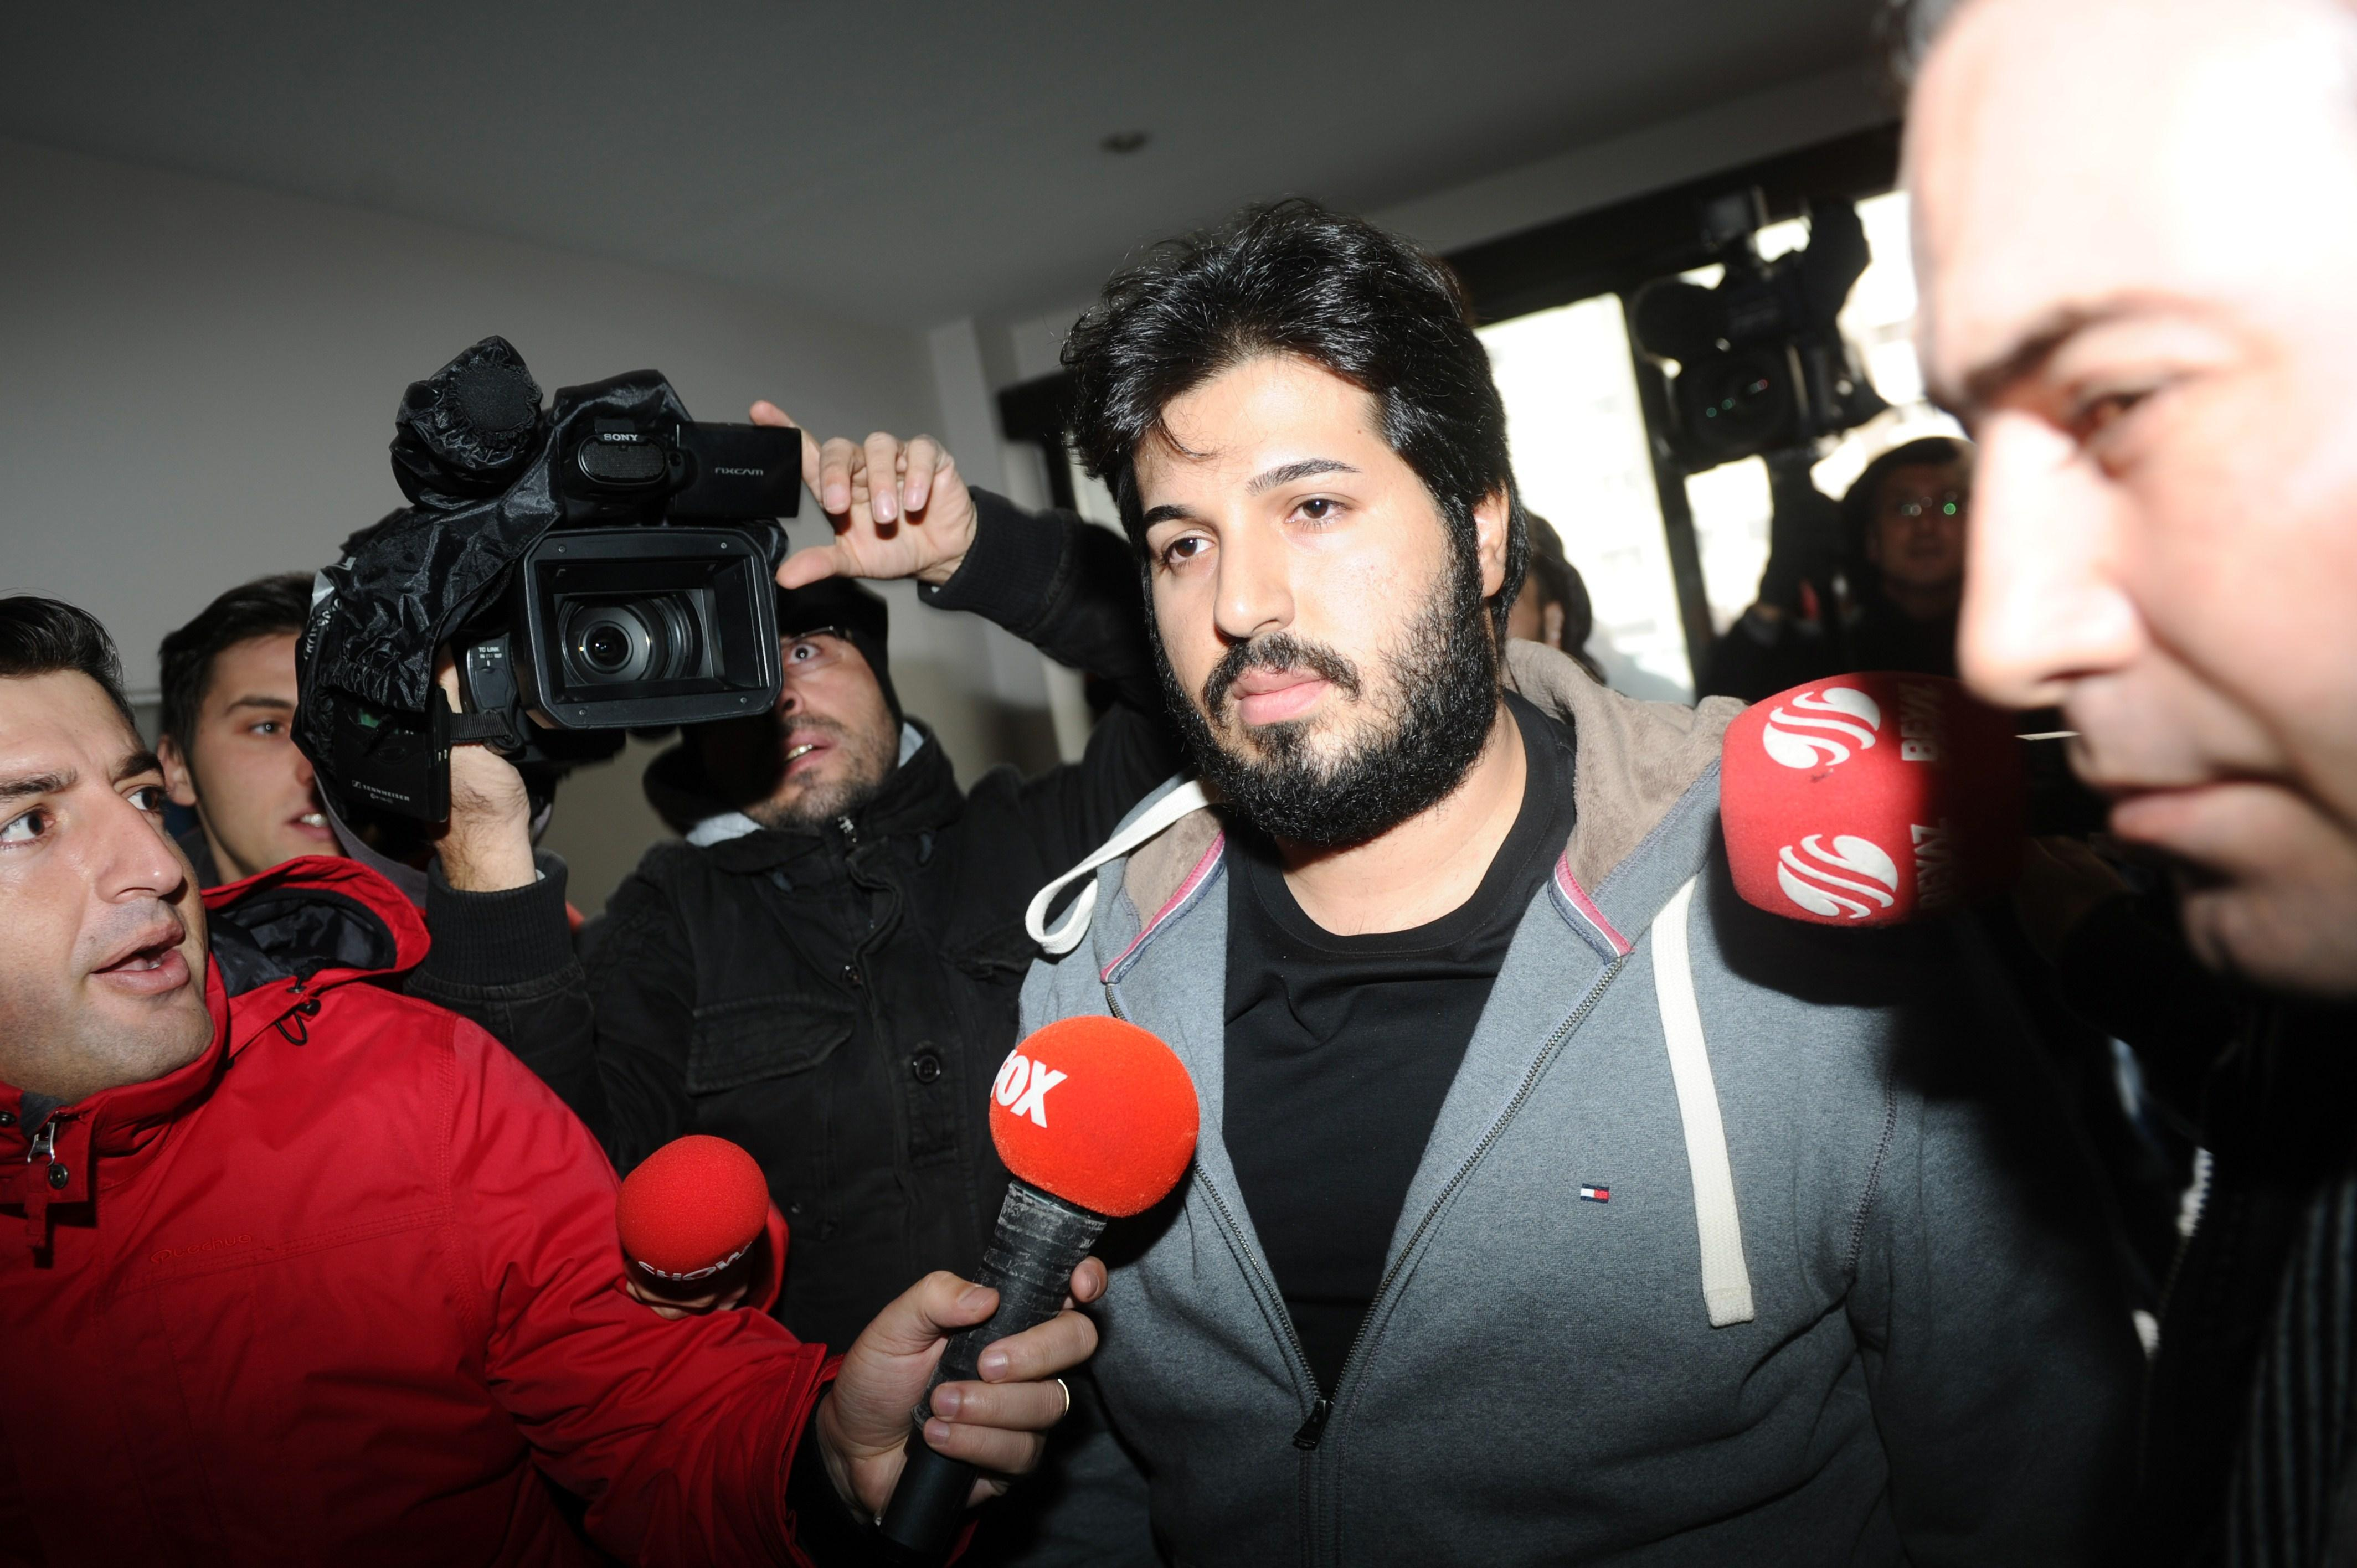 U.S. tells Turkey trader Riza Sarraf's health is 'good'